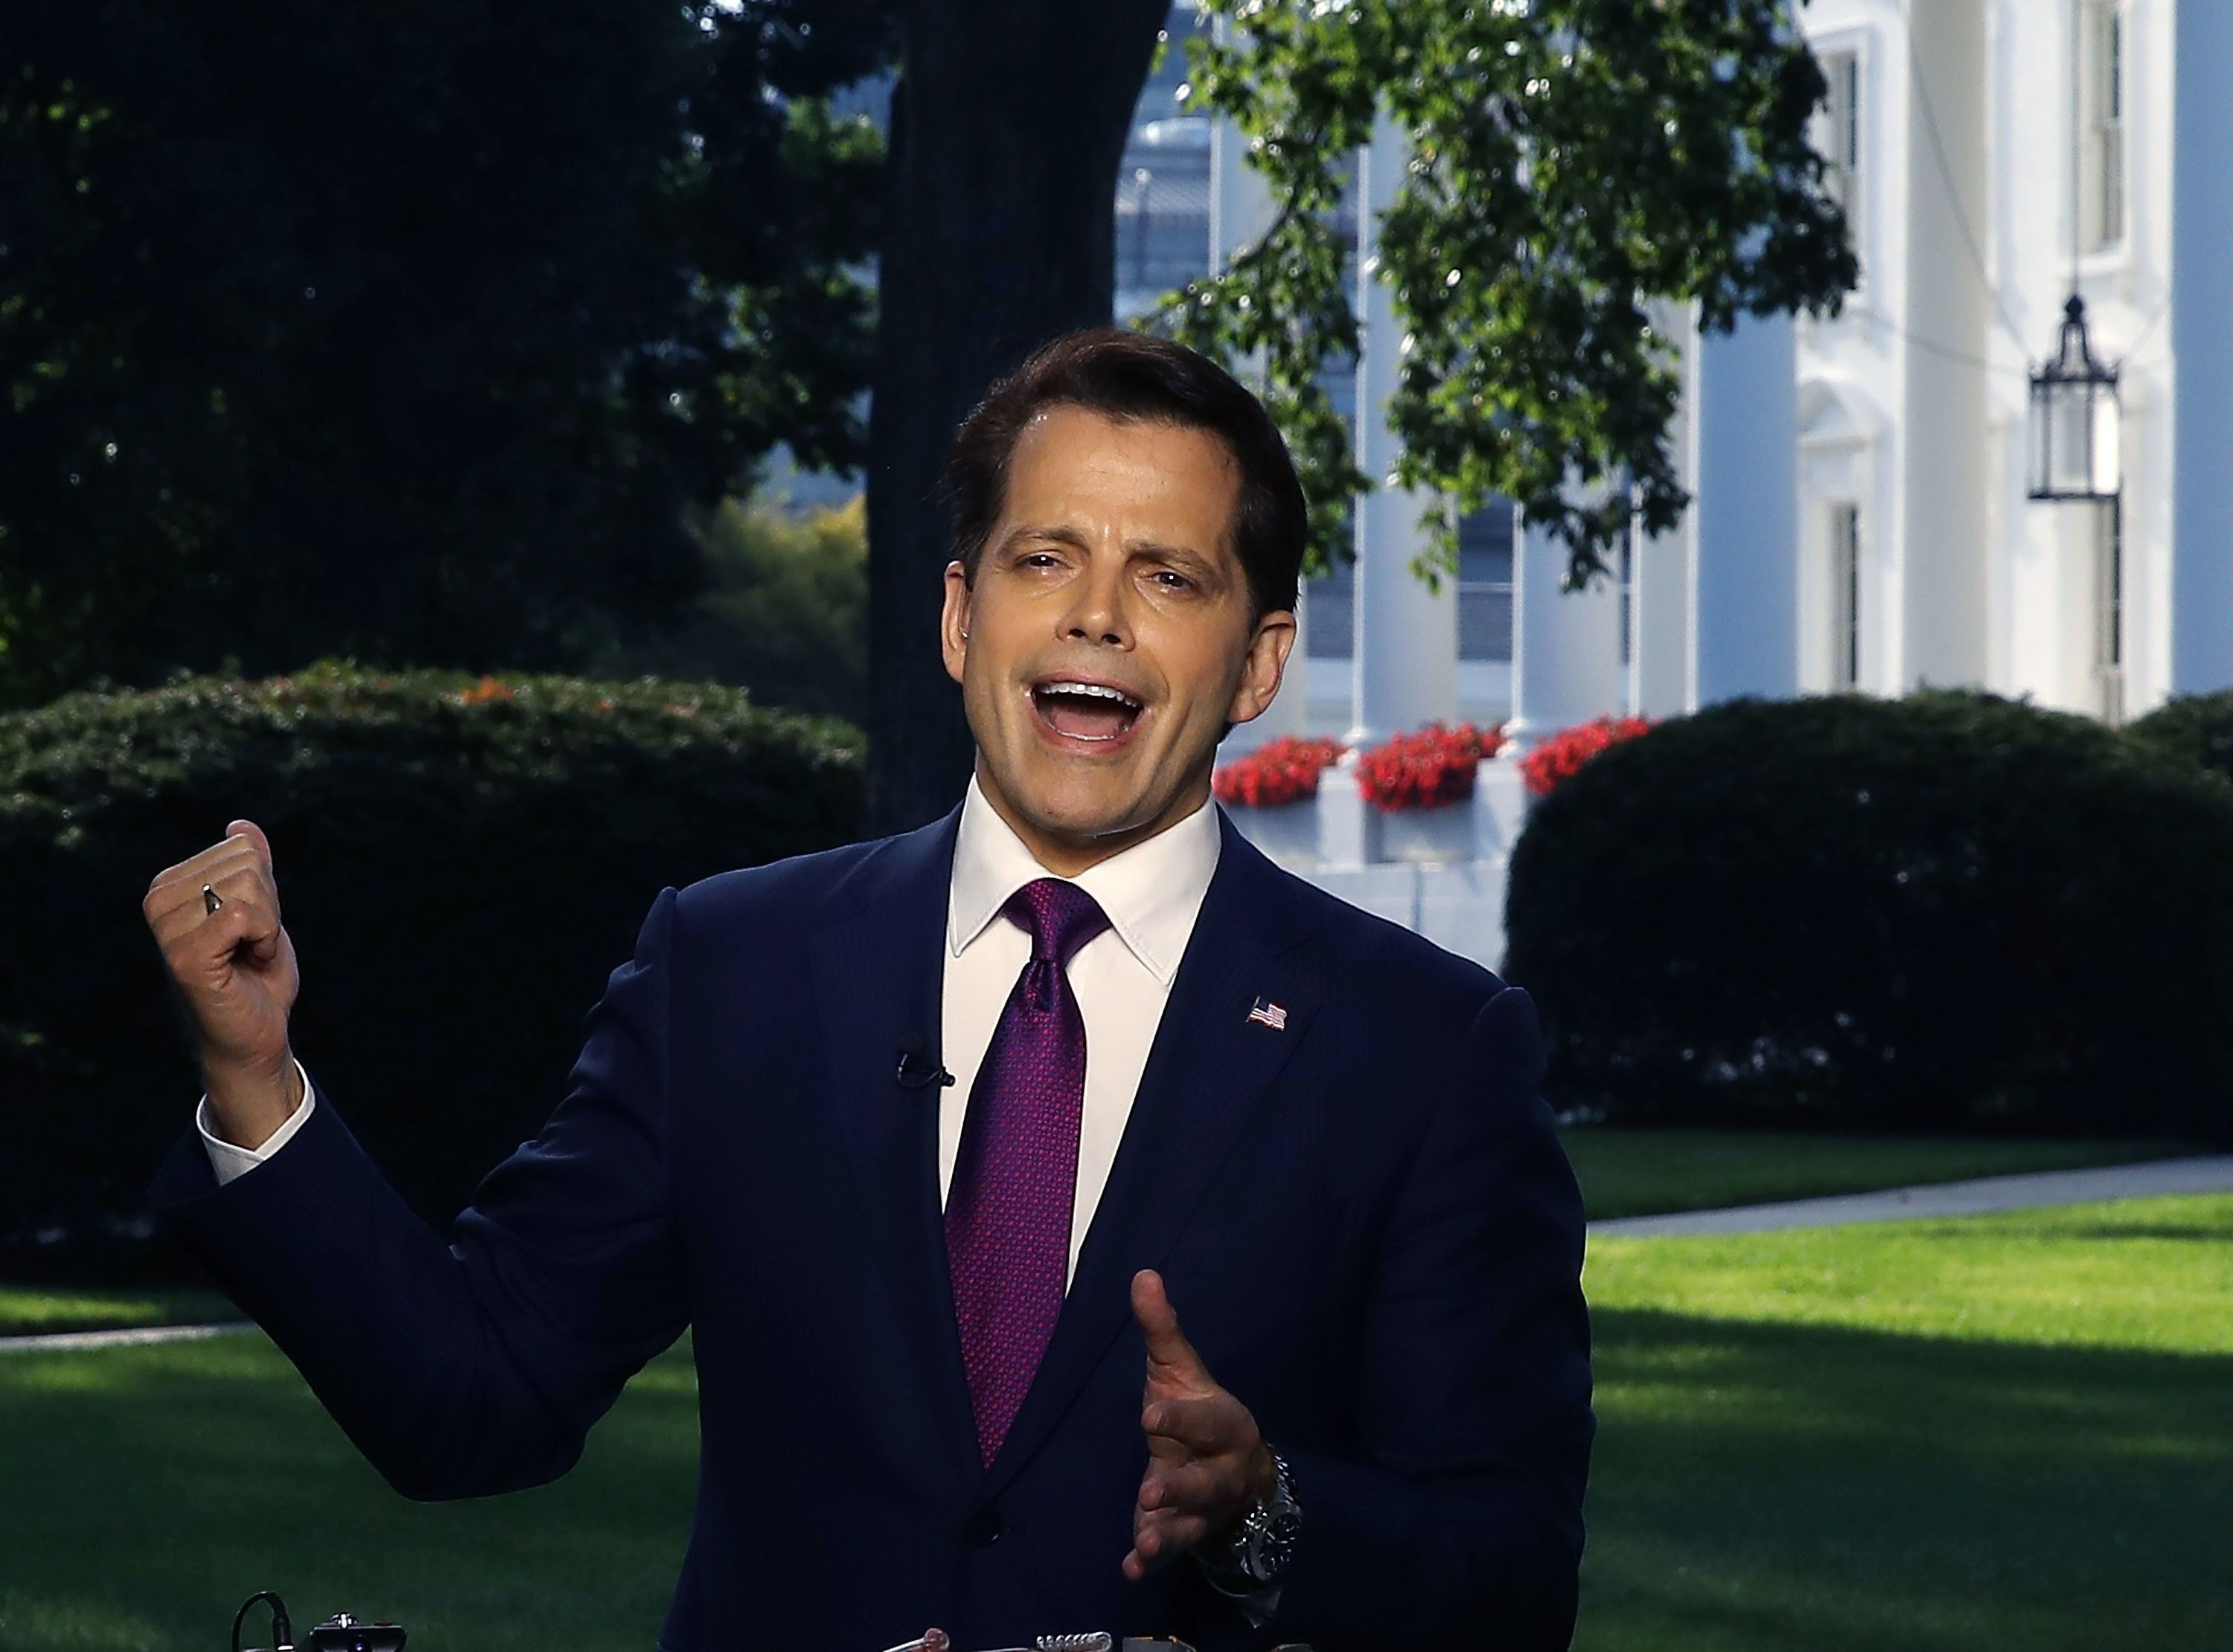 With Millions Set To Lose Health Care, Cable News Focuses On Scaramucci's Mouth